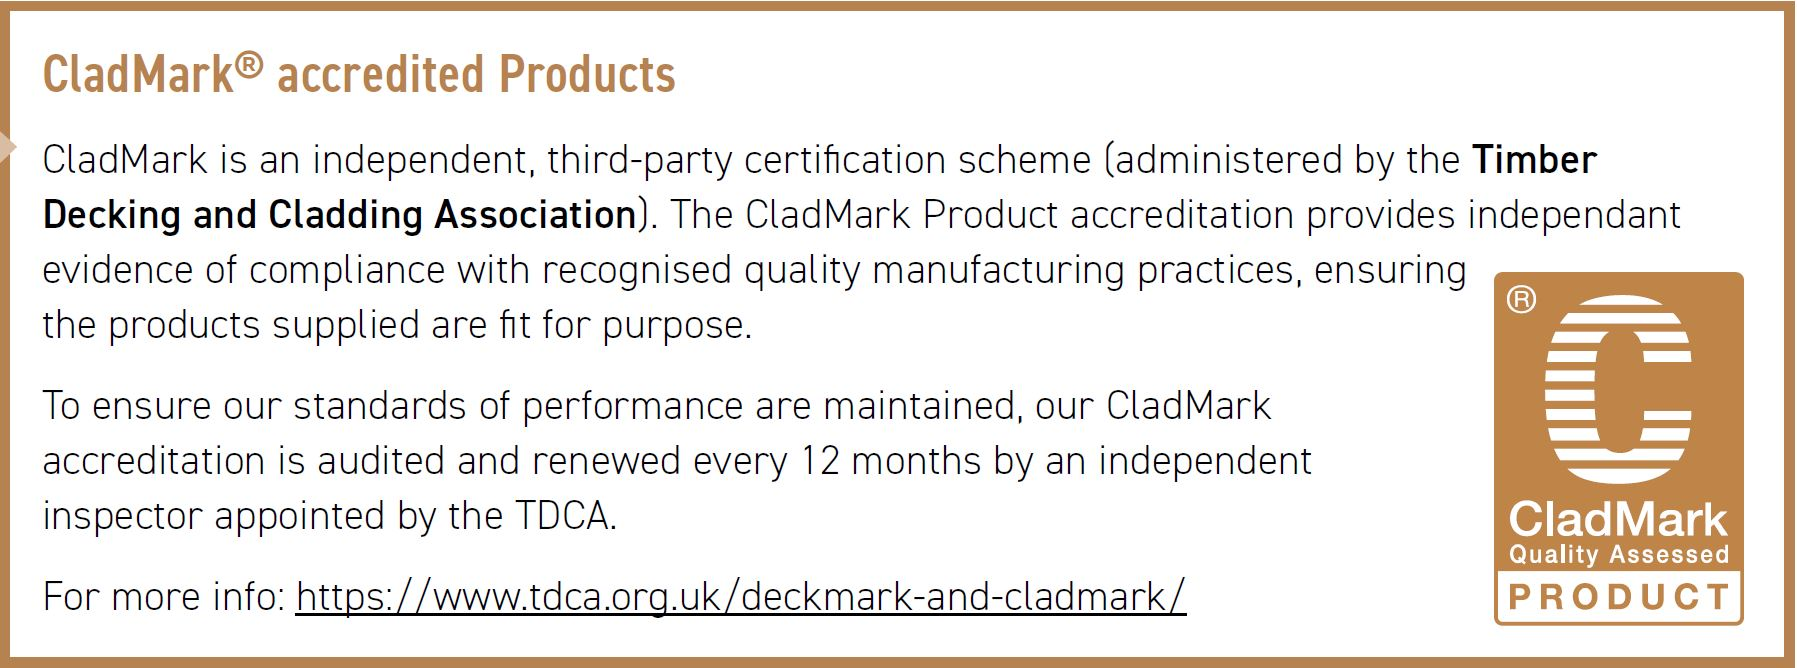 CladMark Approved TDCA